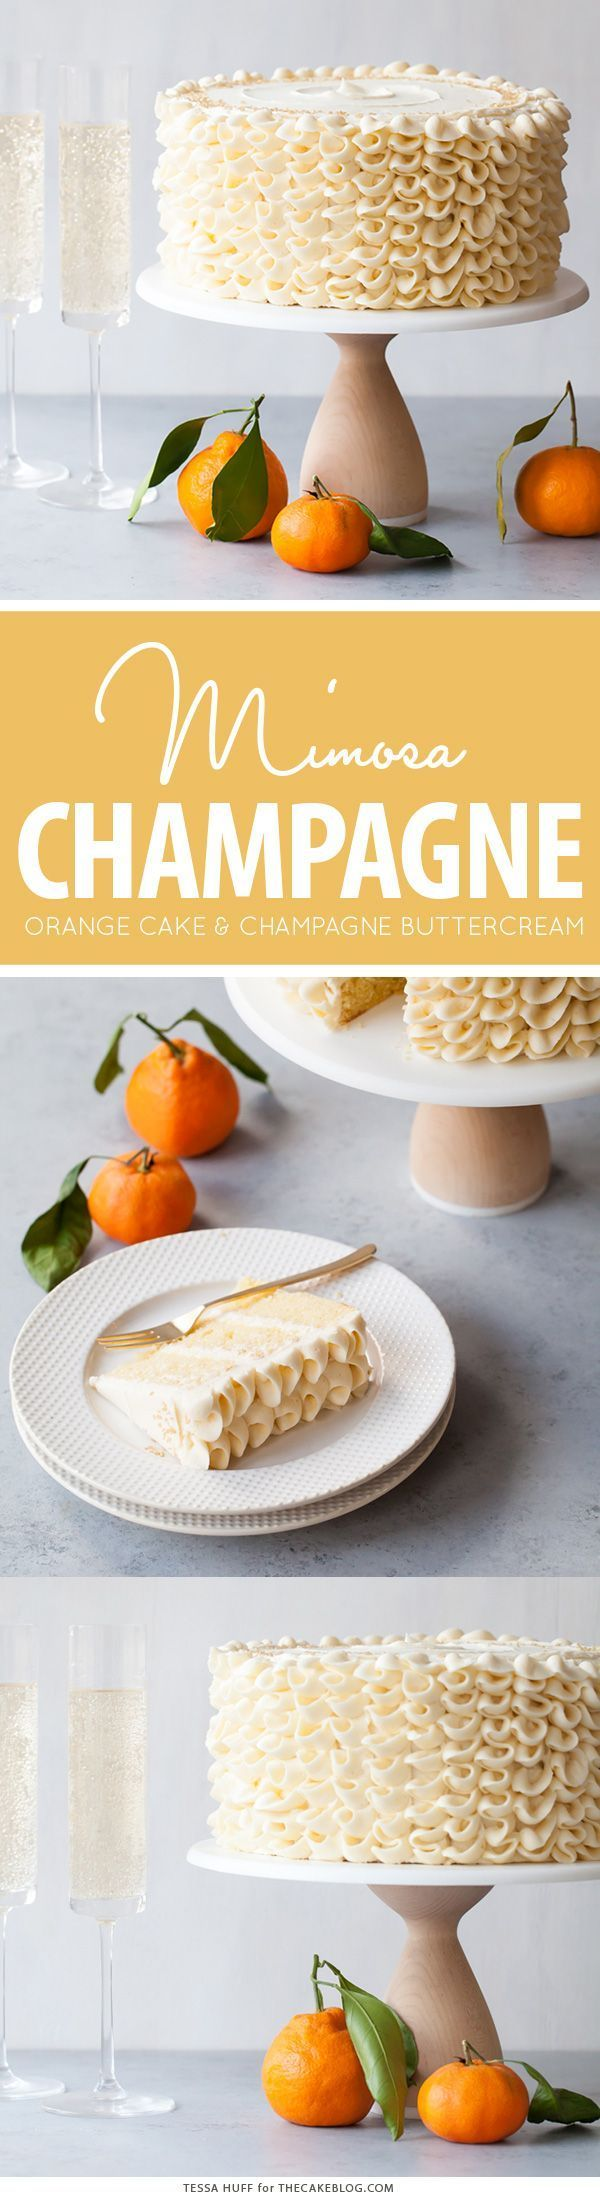 Champagne Mimosa Cake - tender, orange sponge cake smothered with silky champagne buttercream | by Tessa Huff for http://TheCakeBlog.com